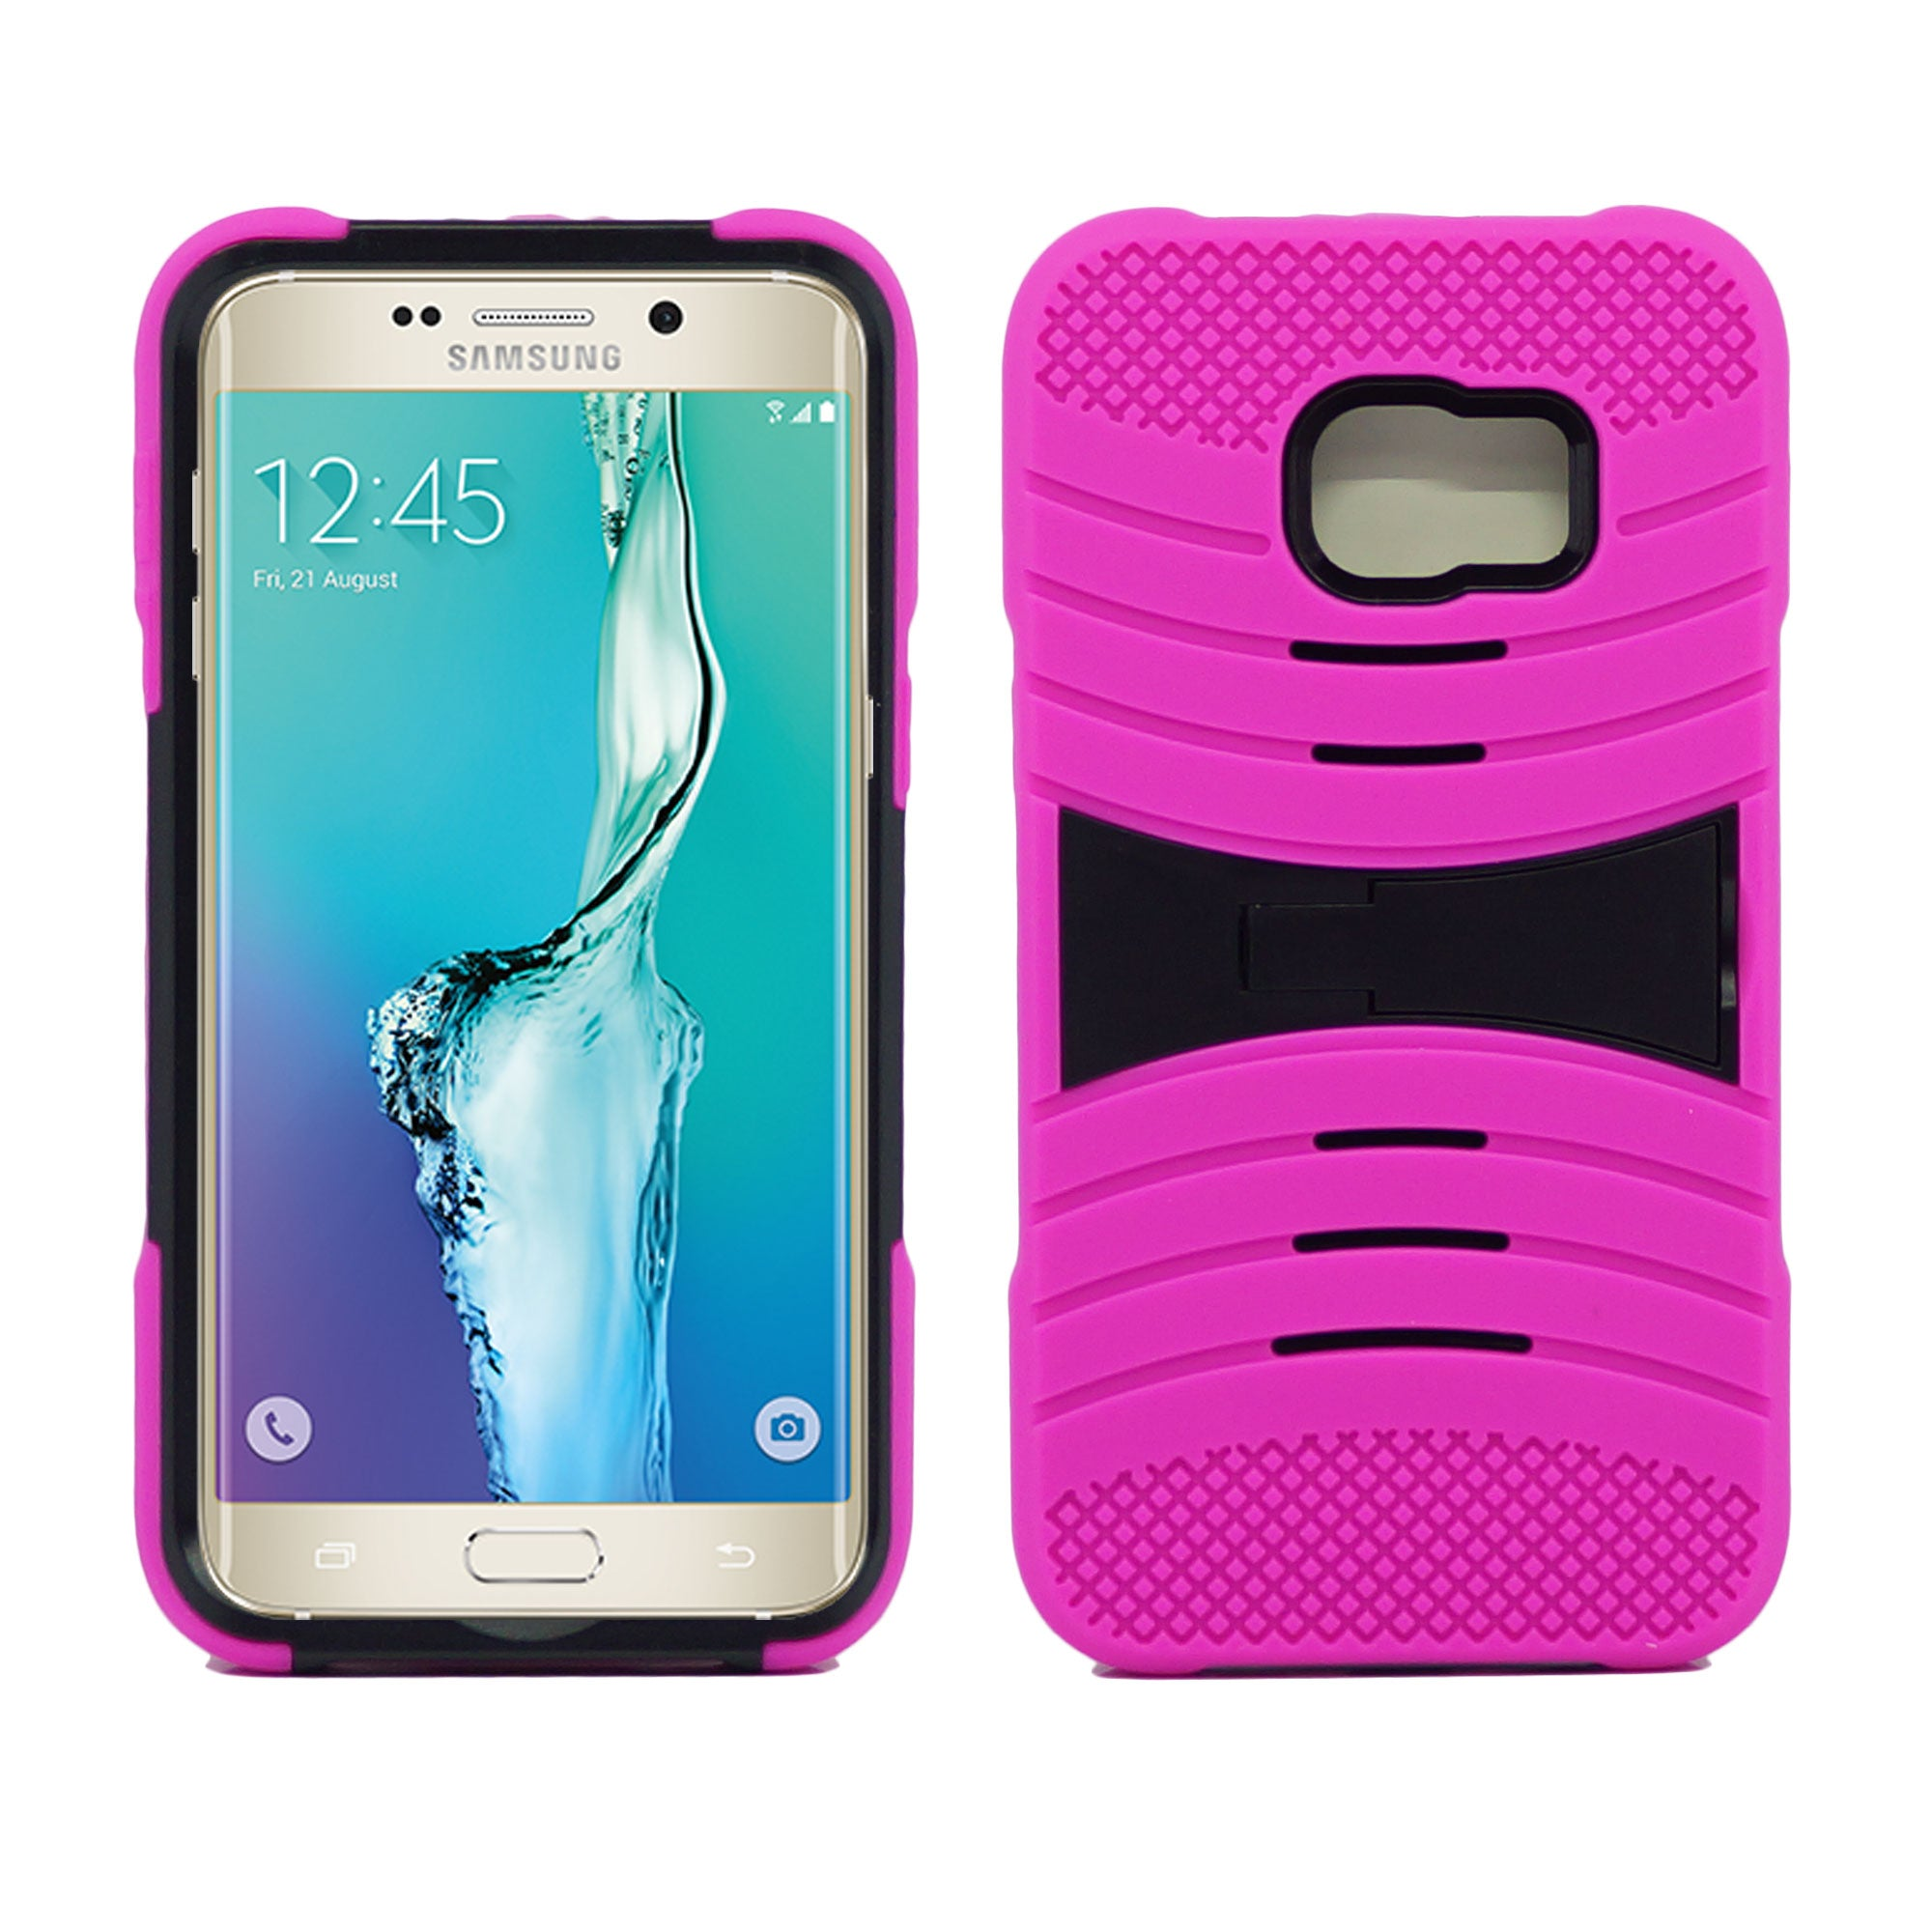 Samsung Galaxy S6 Edge Plus Hybrid Silicone Case Stand by Modes